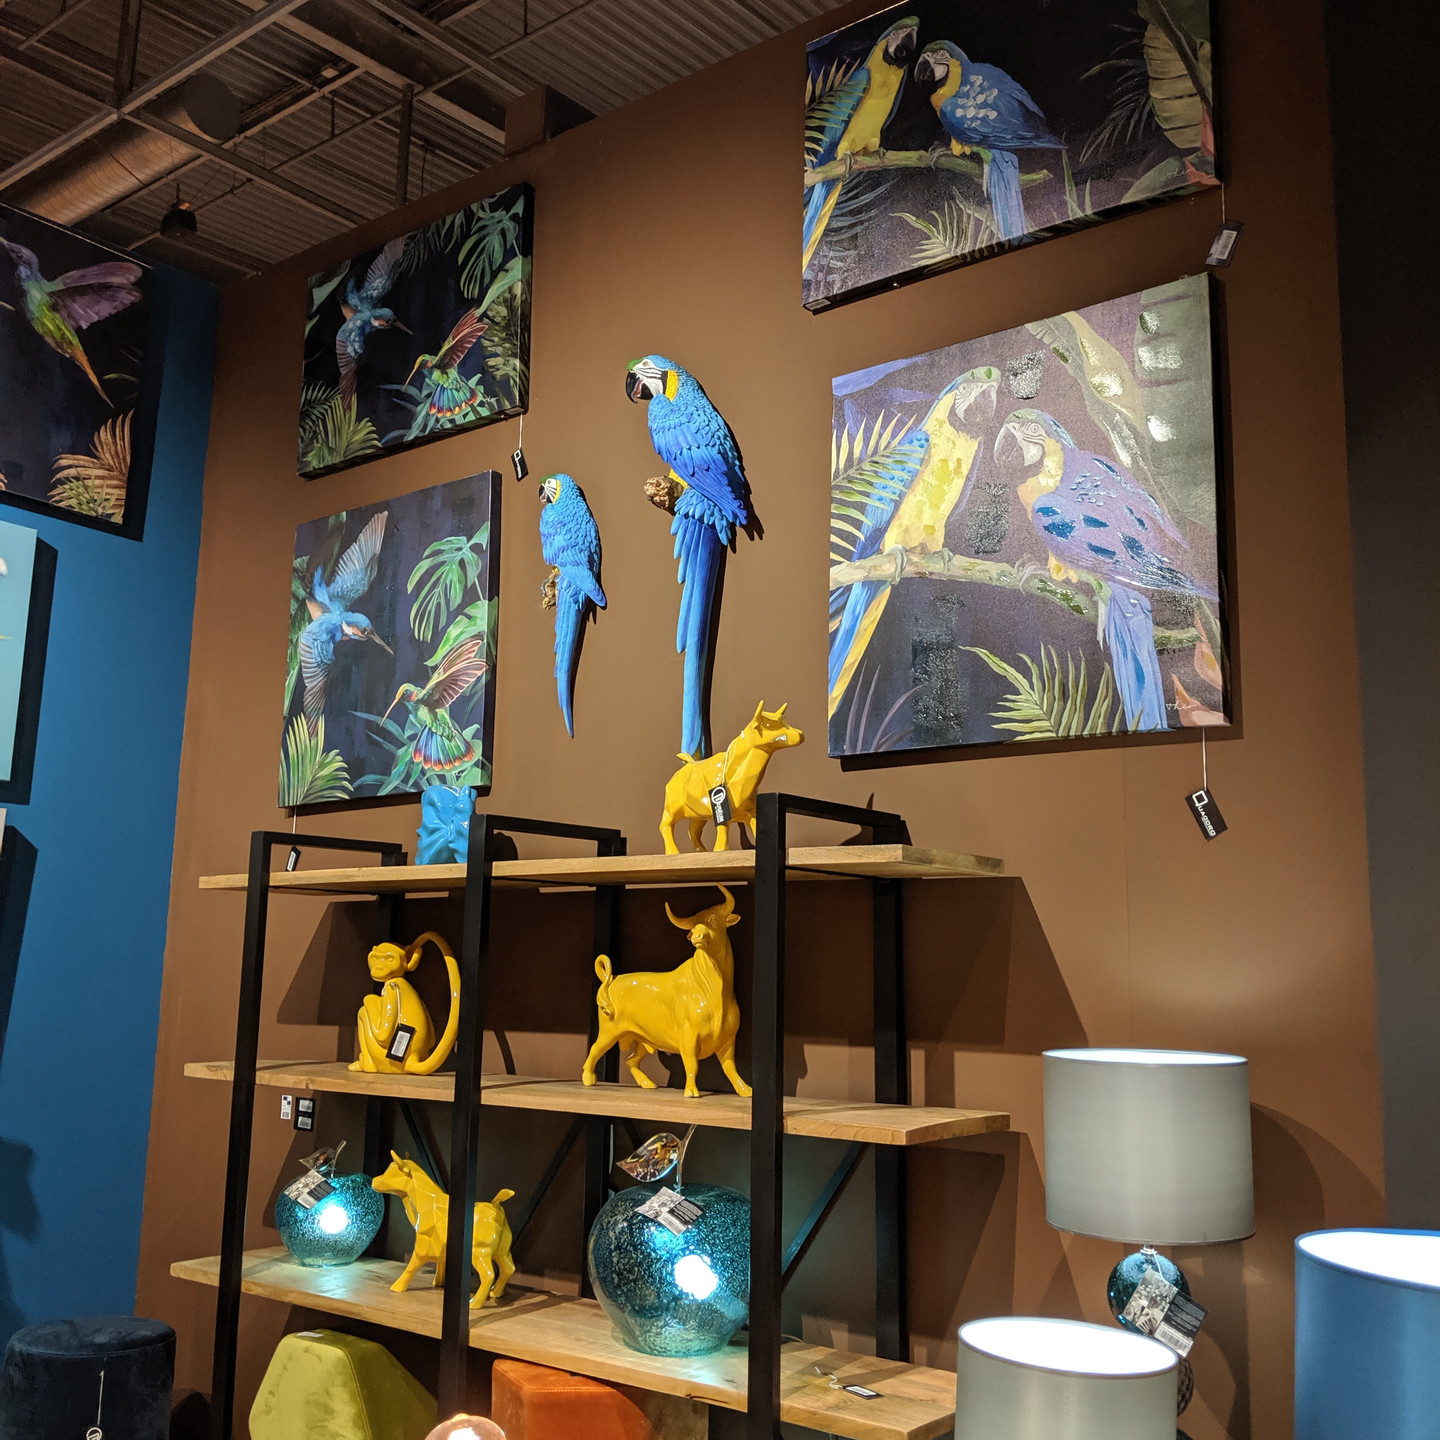 Blue and Yellow Animal Statues on Shelf with Parrot Paintings